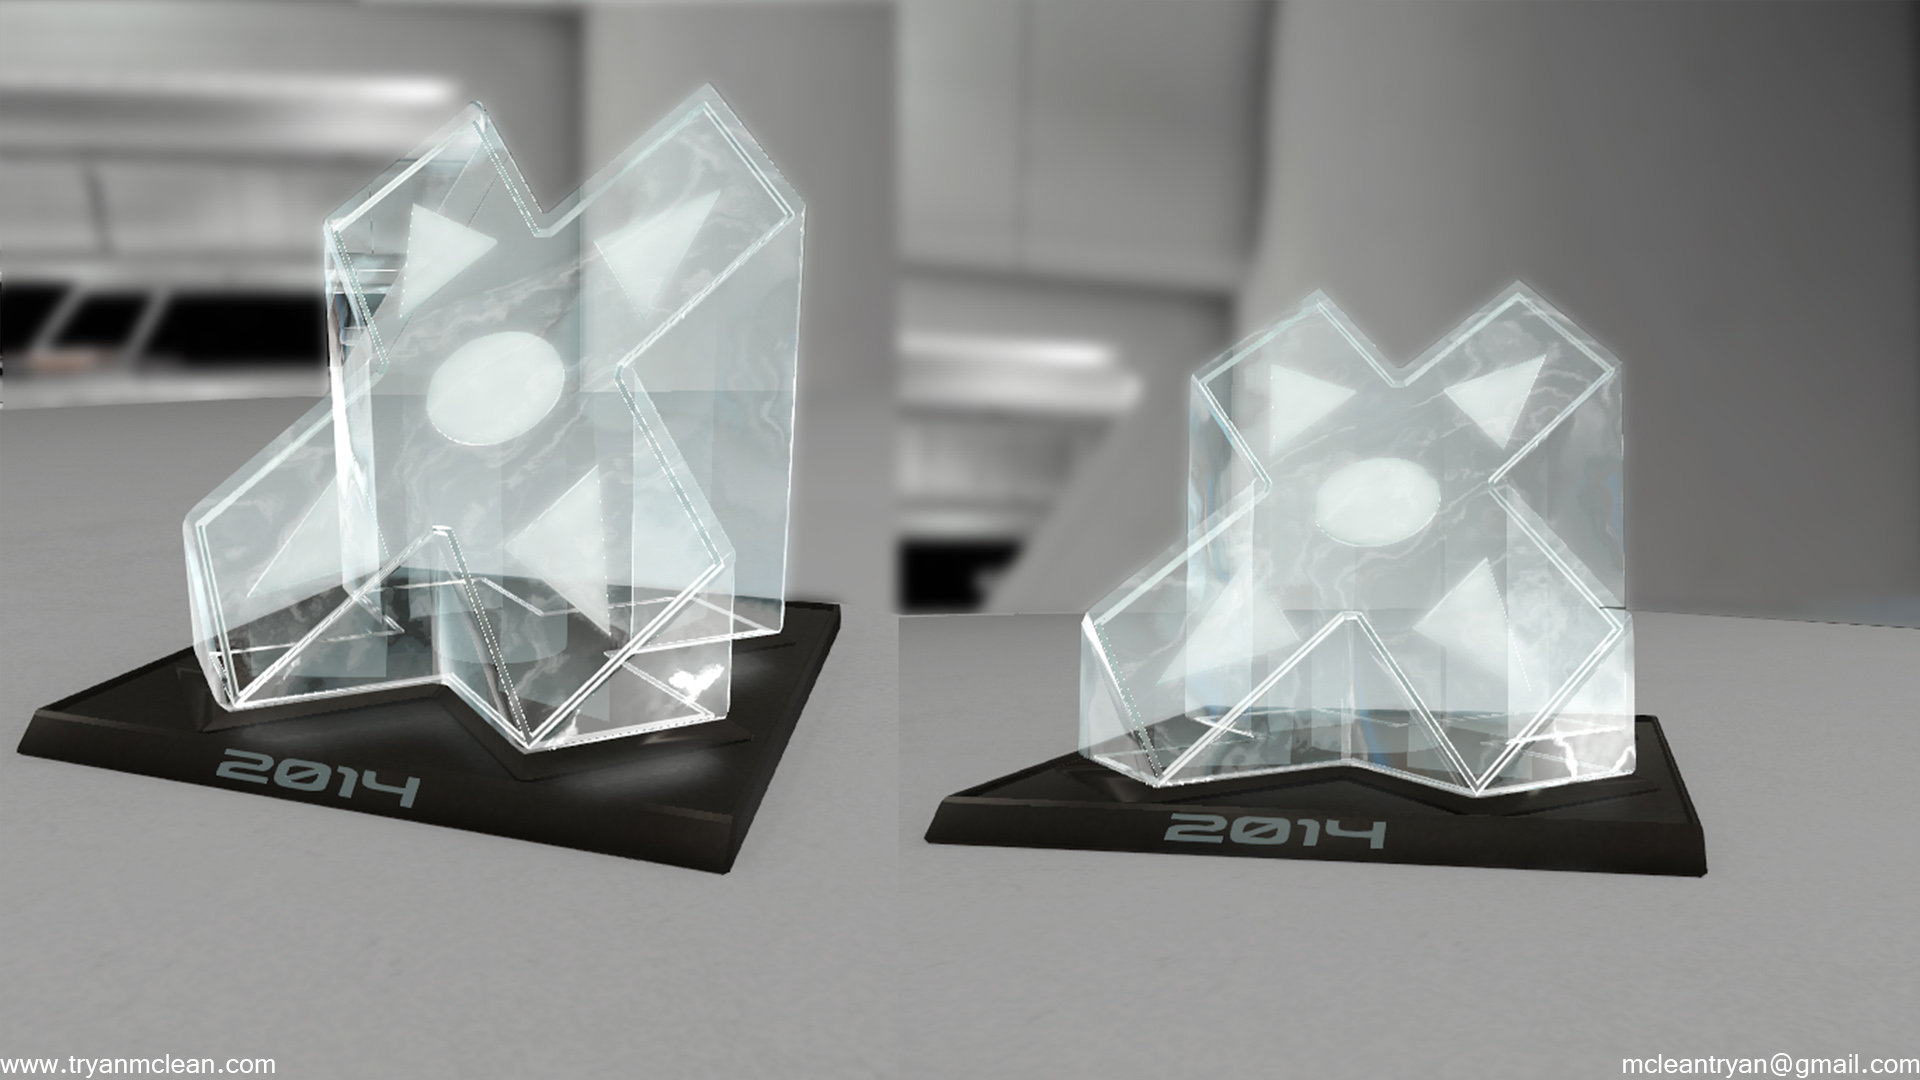 Star Citizen Subscriber Flair Trophy. Modelling by myself, material by myself.